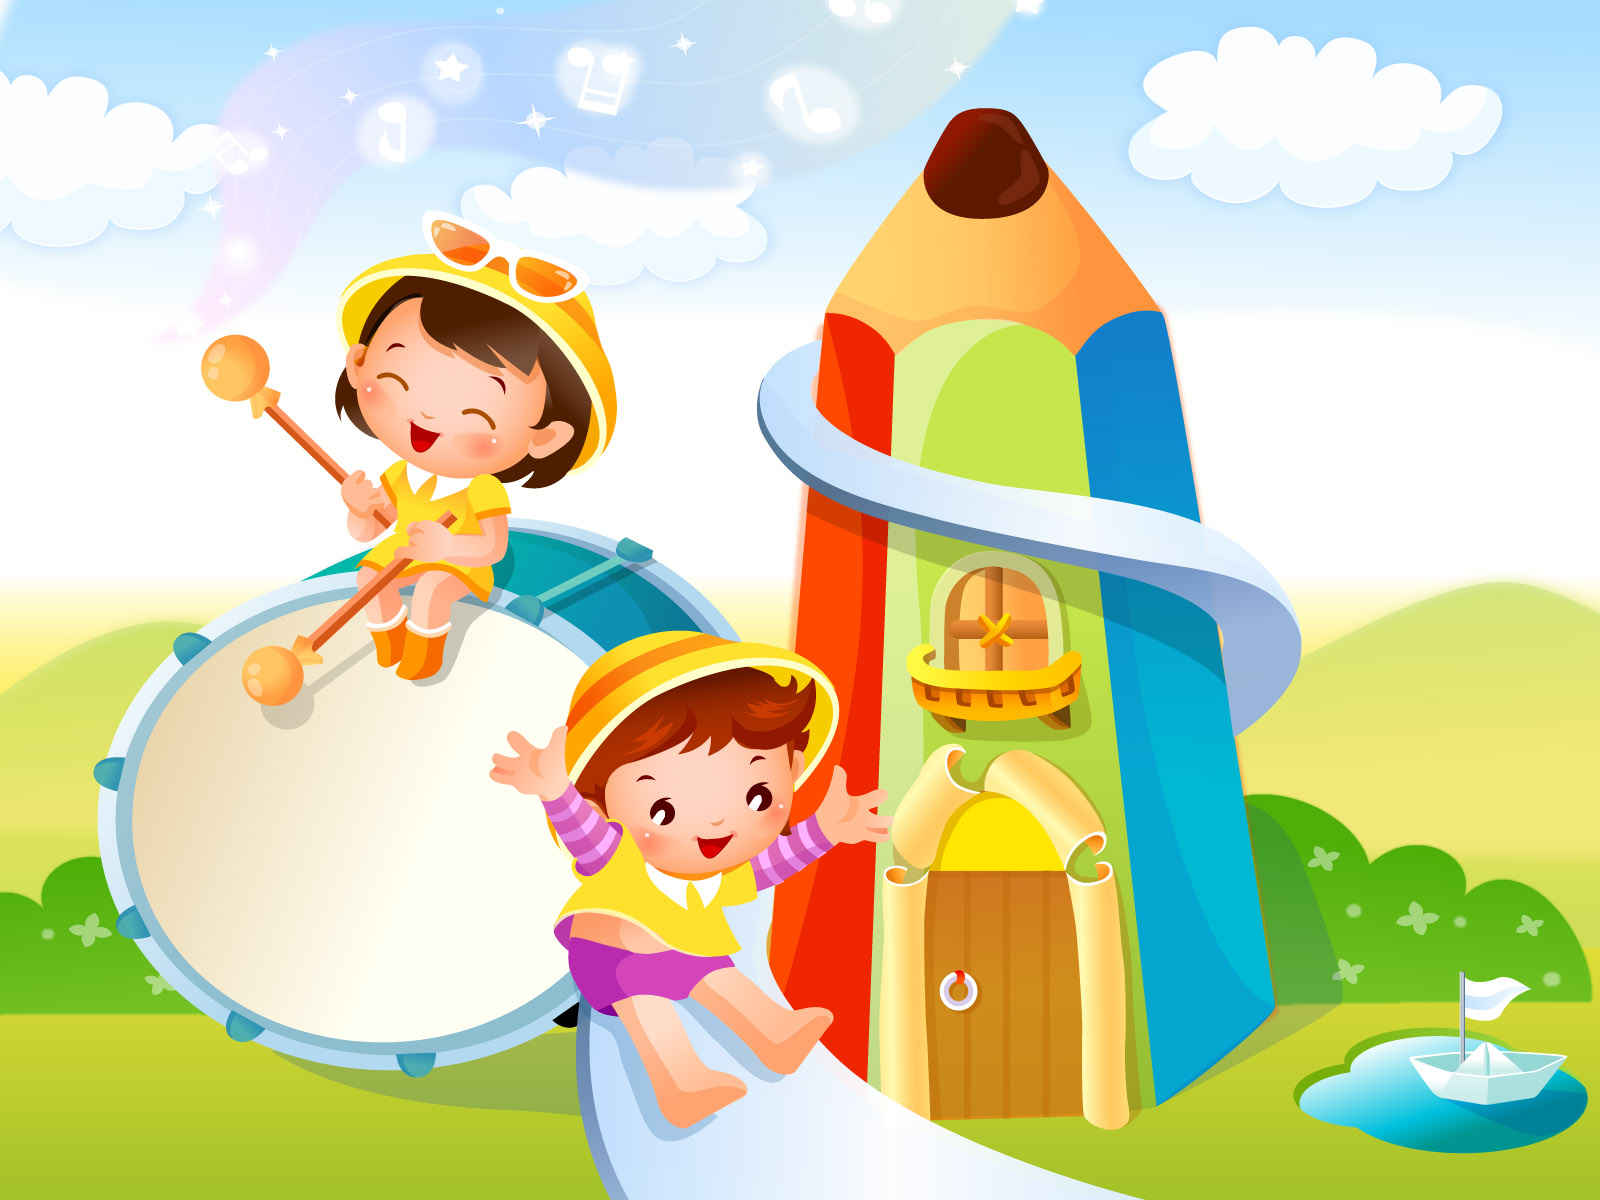 Cartoon childhood dream 19004 - Fairy tales illustration - Cartoon ...